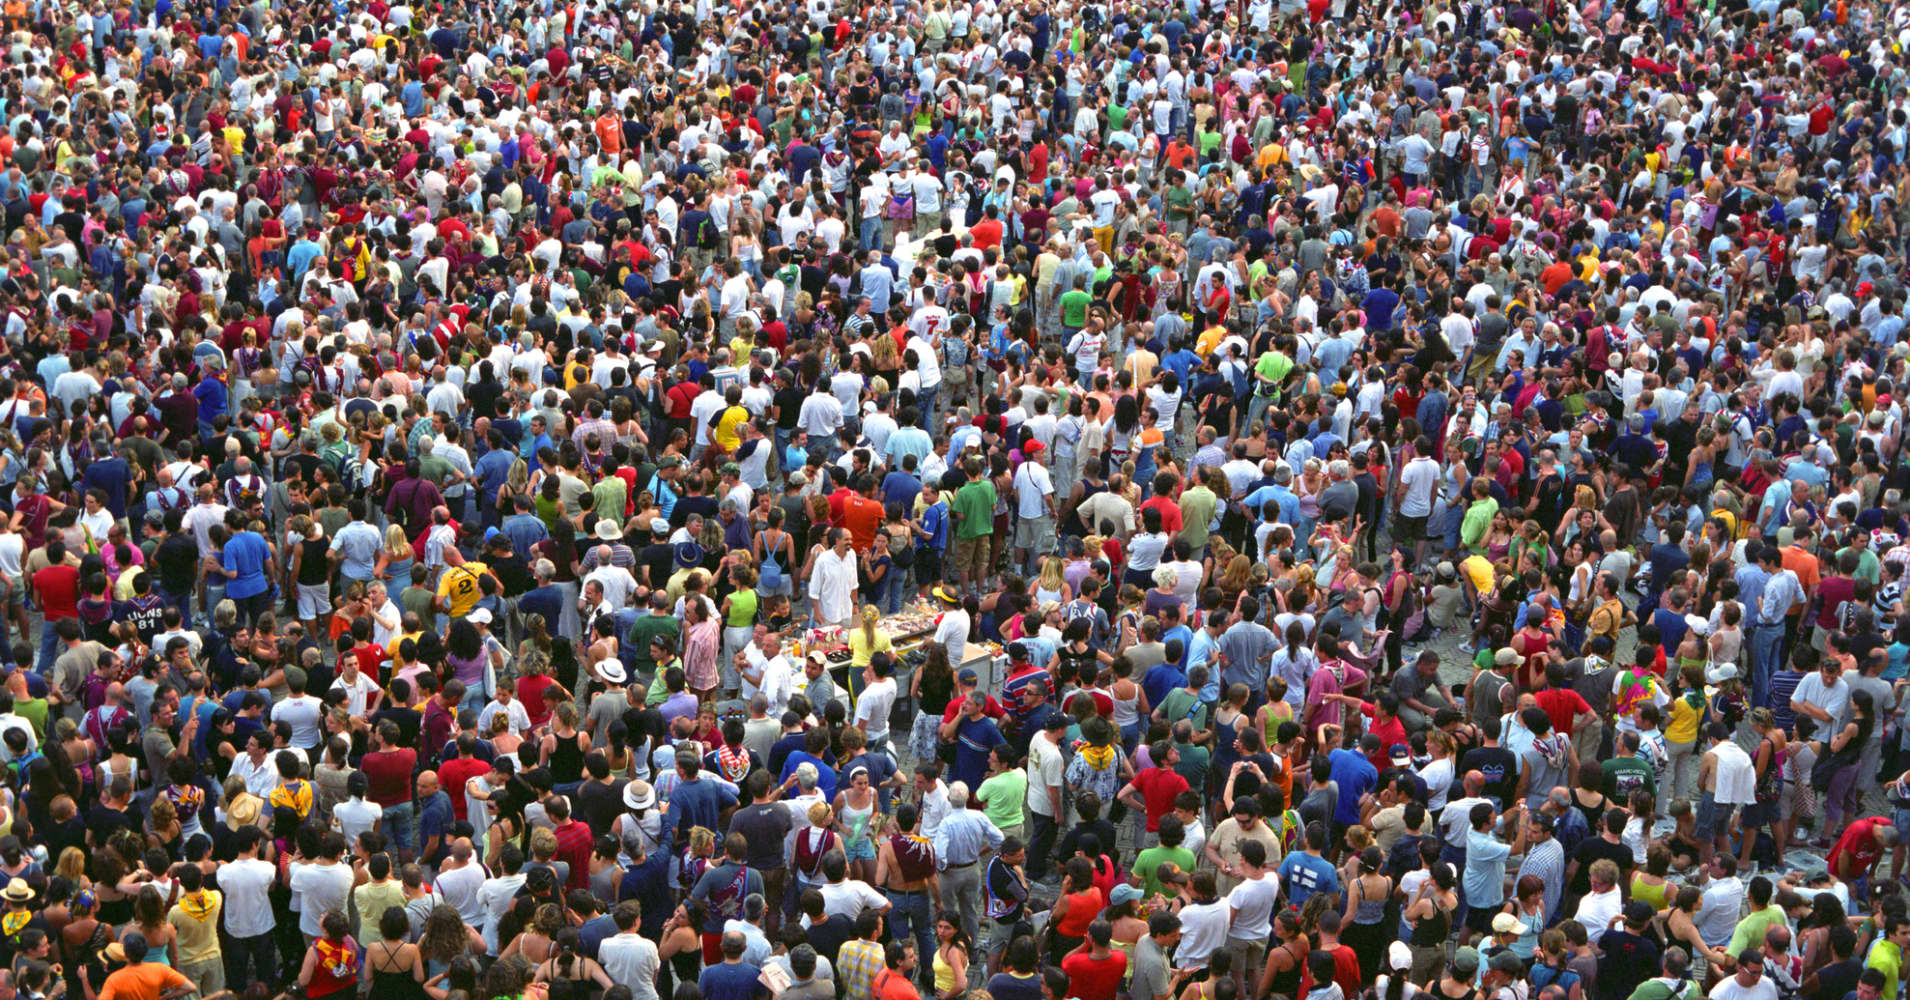 UN raises world population forecast to 9.8 billion people by 2050 due to rapid growth in Africa